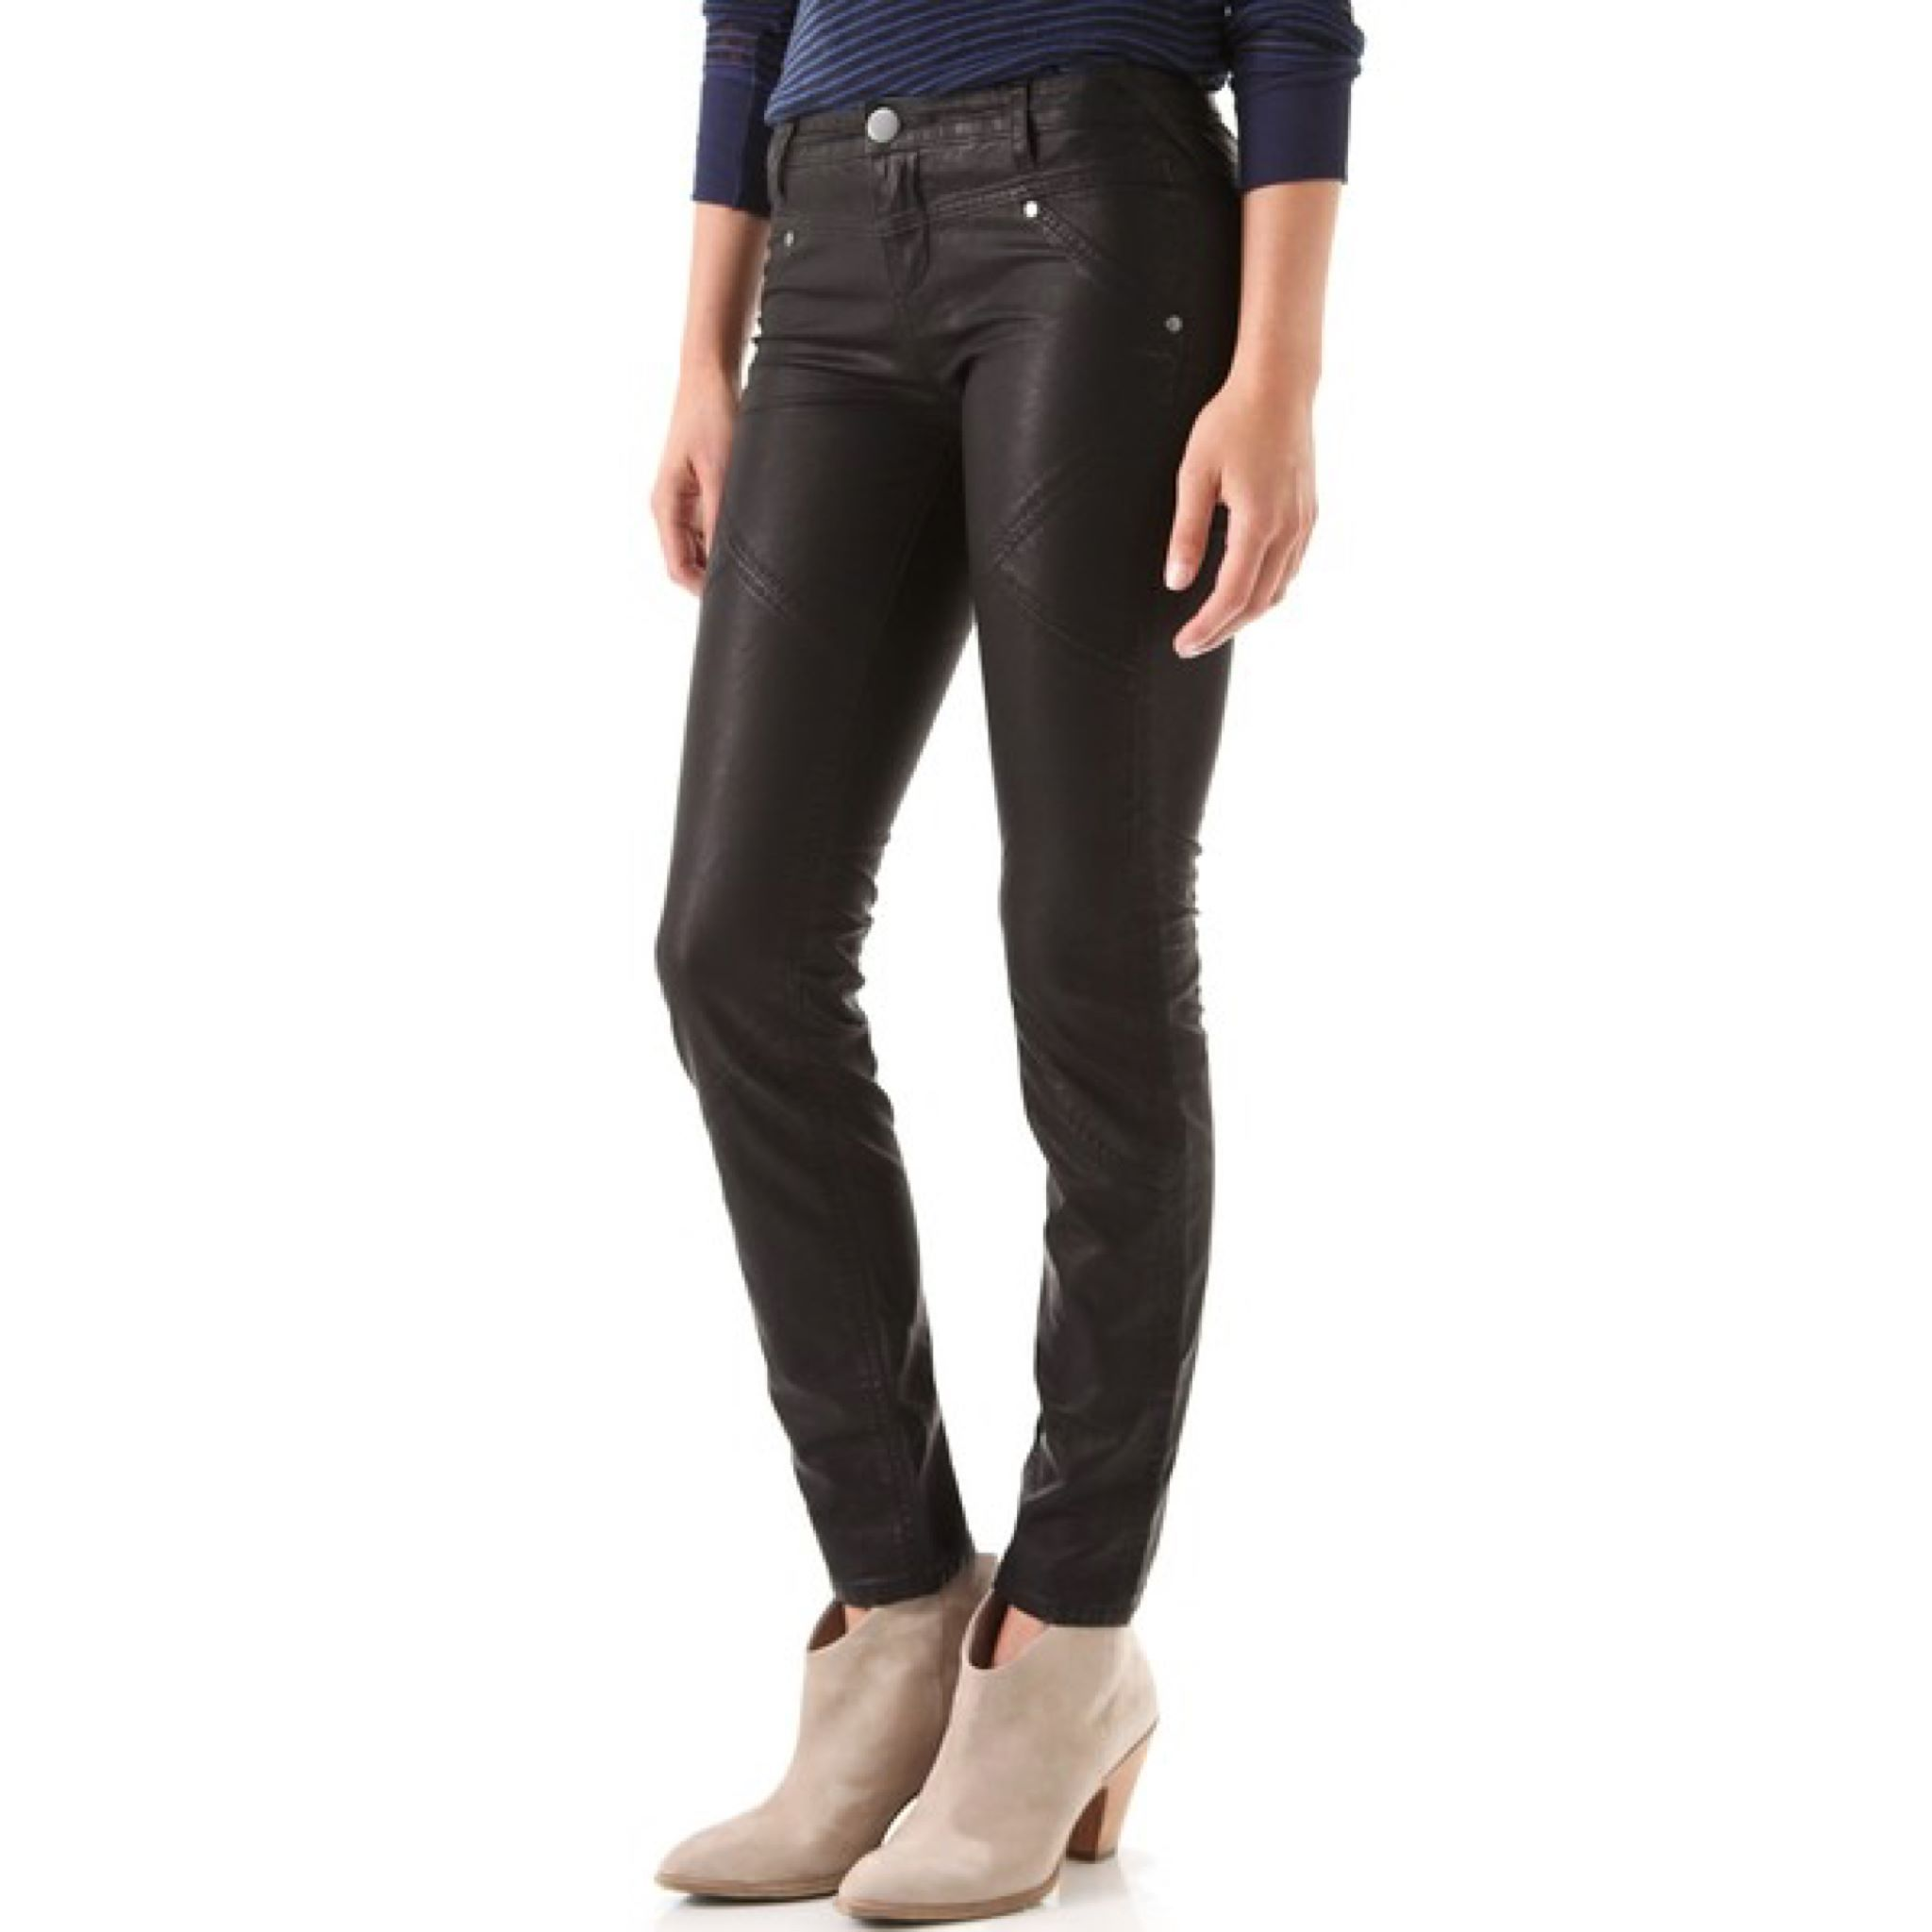 "Free People ""We The Free"" Vegan Leather Mid-Rise Skinny Moto Pants - Only $49.99  FREE Shipping! Shop link in bio. #freepeople #jeans #discount #swankybazaar"